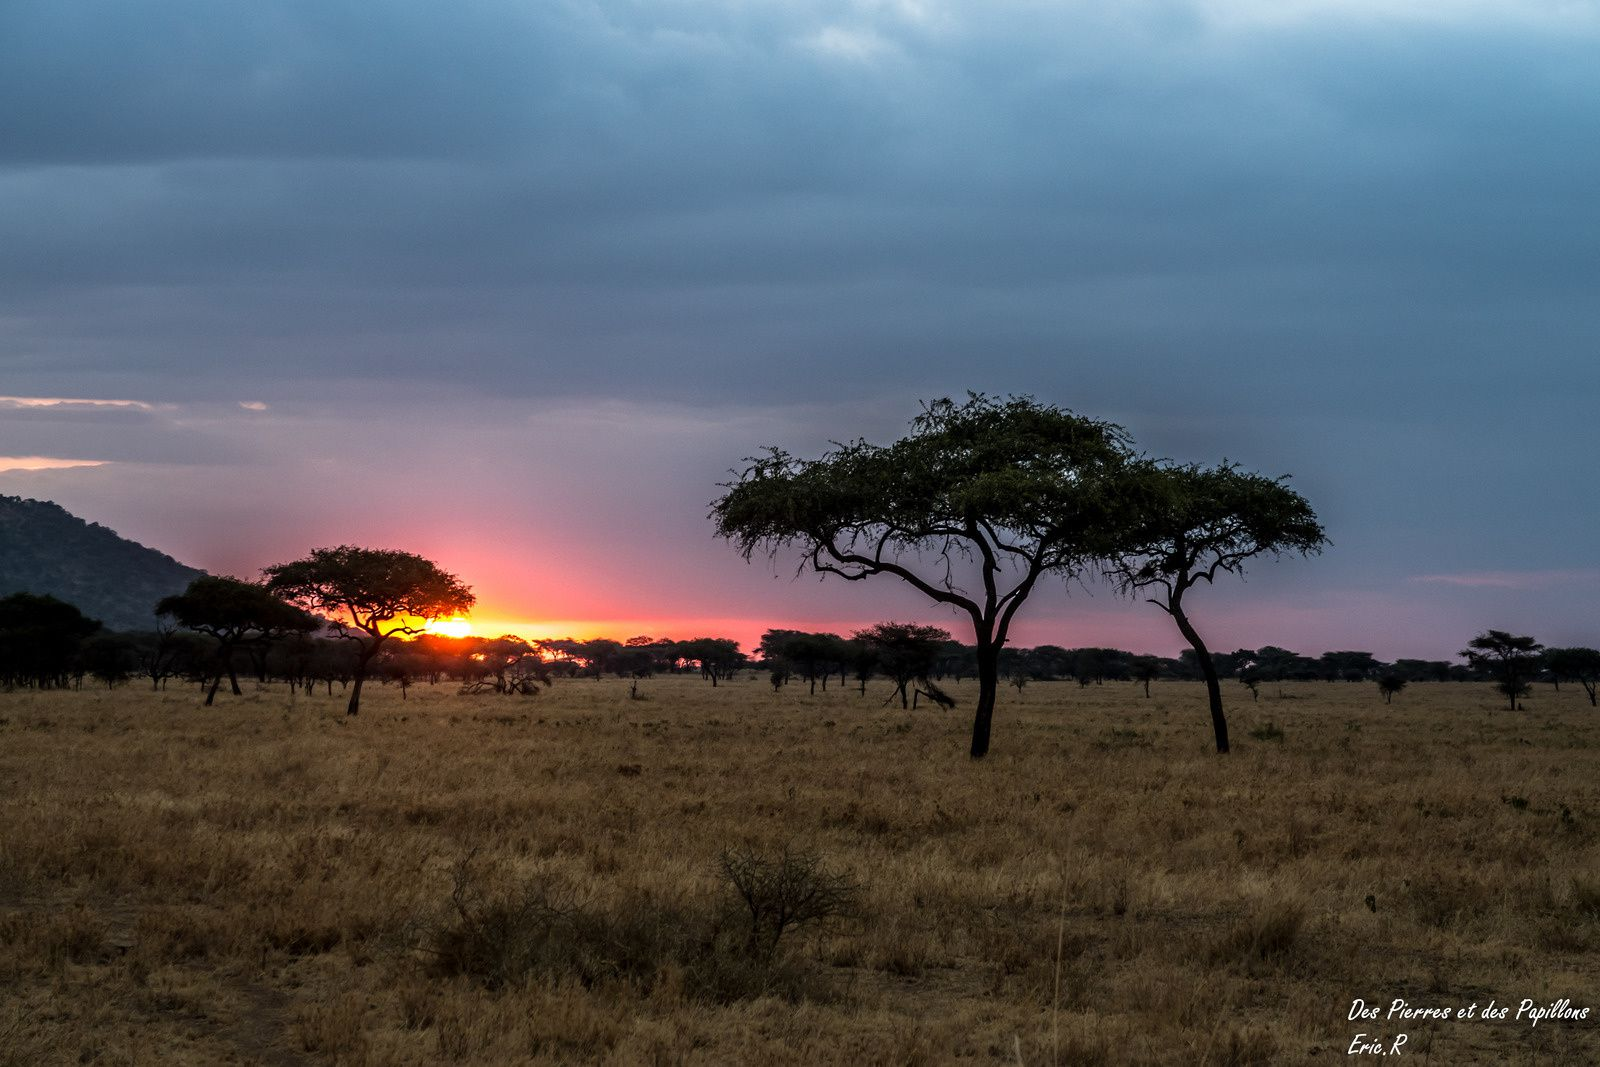 Tanzanie : une journée en immersion dans le parc national du Serengeti.